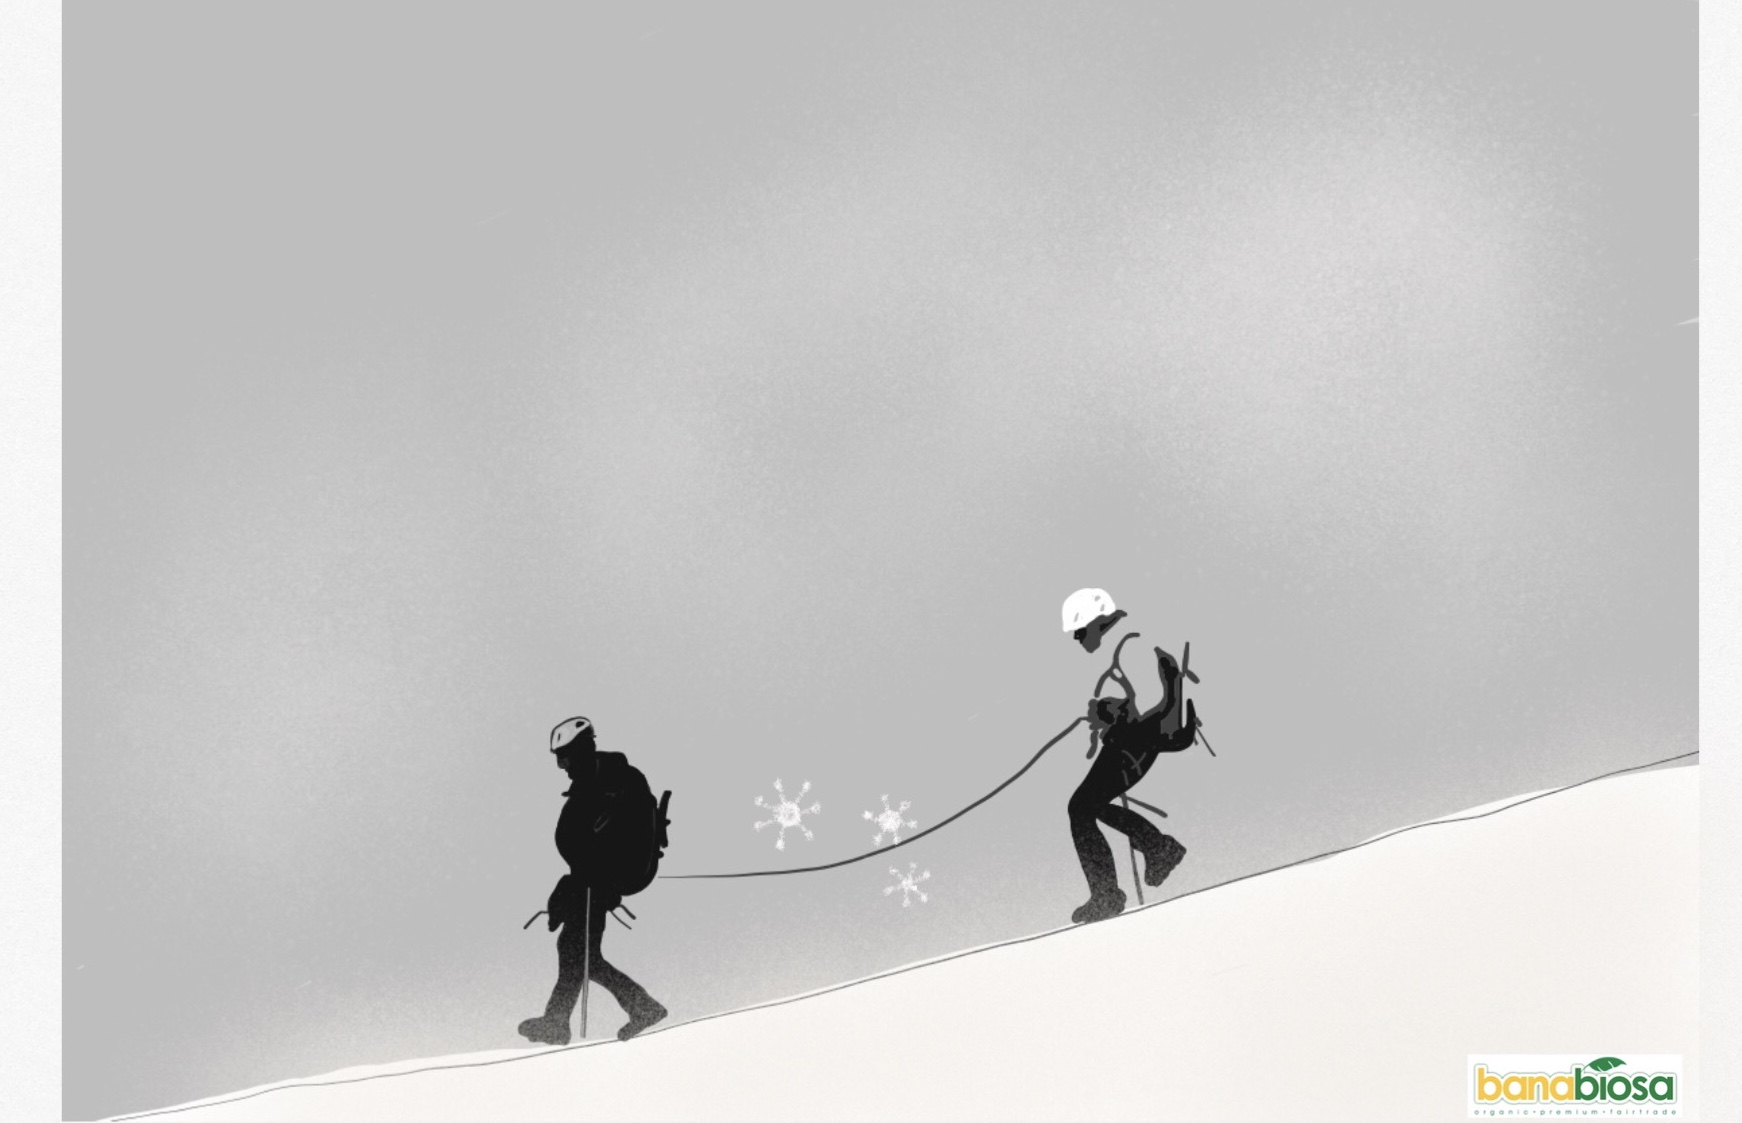 Descent of mountaineers